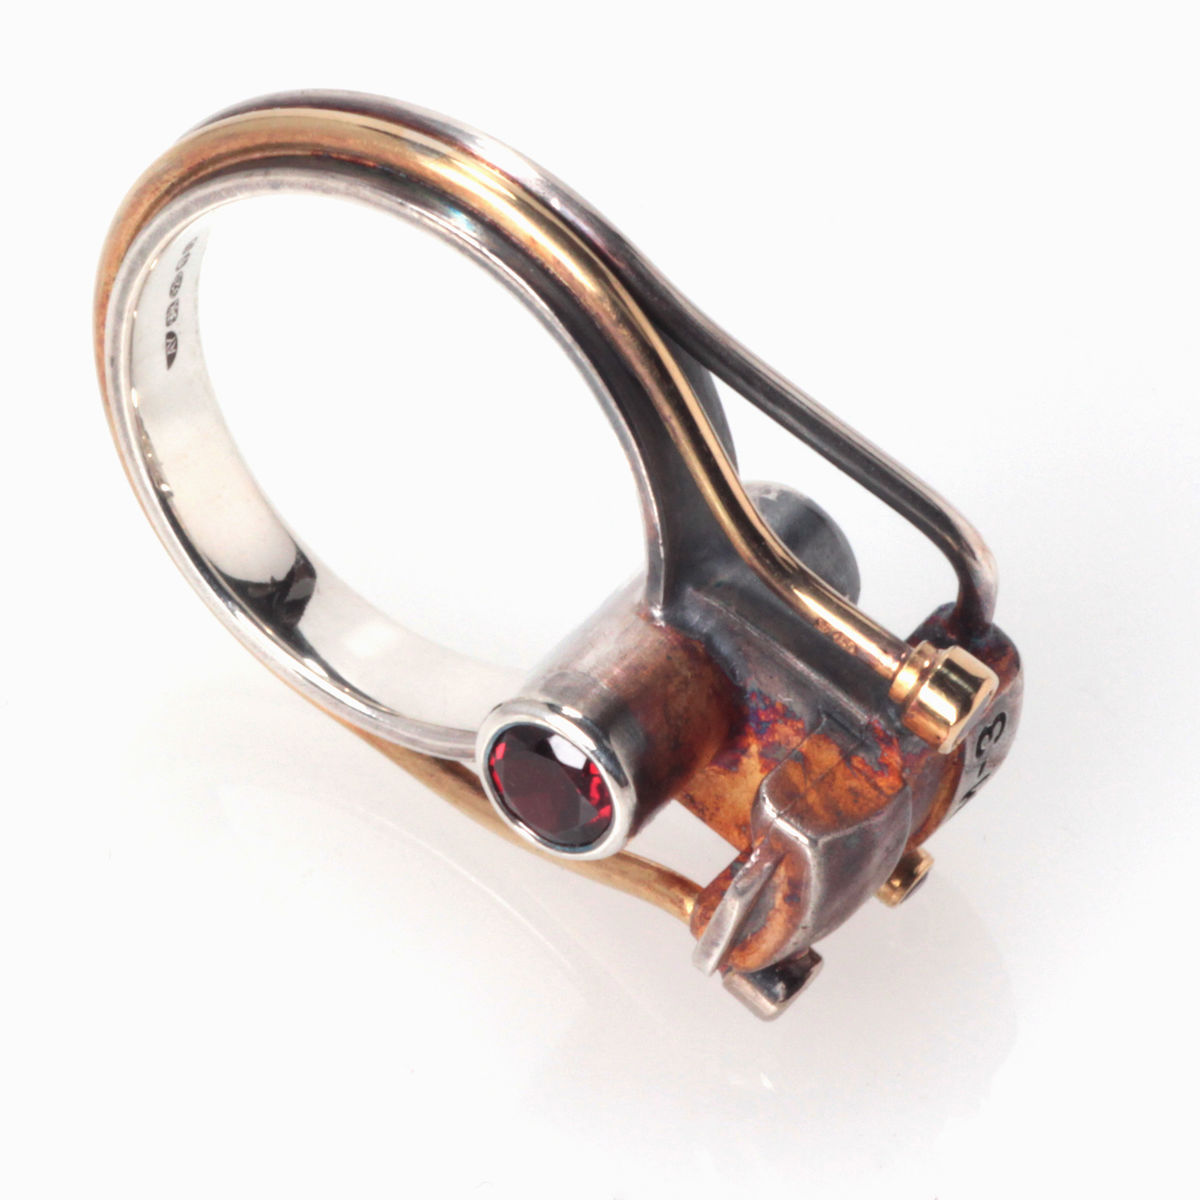 5M-3 Ring - product images  of